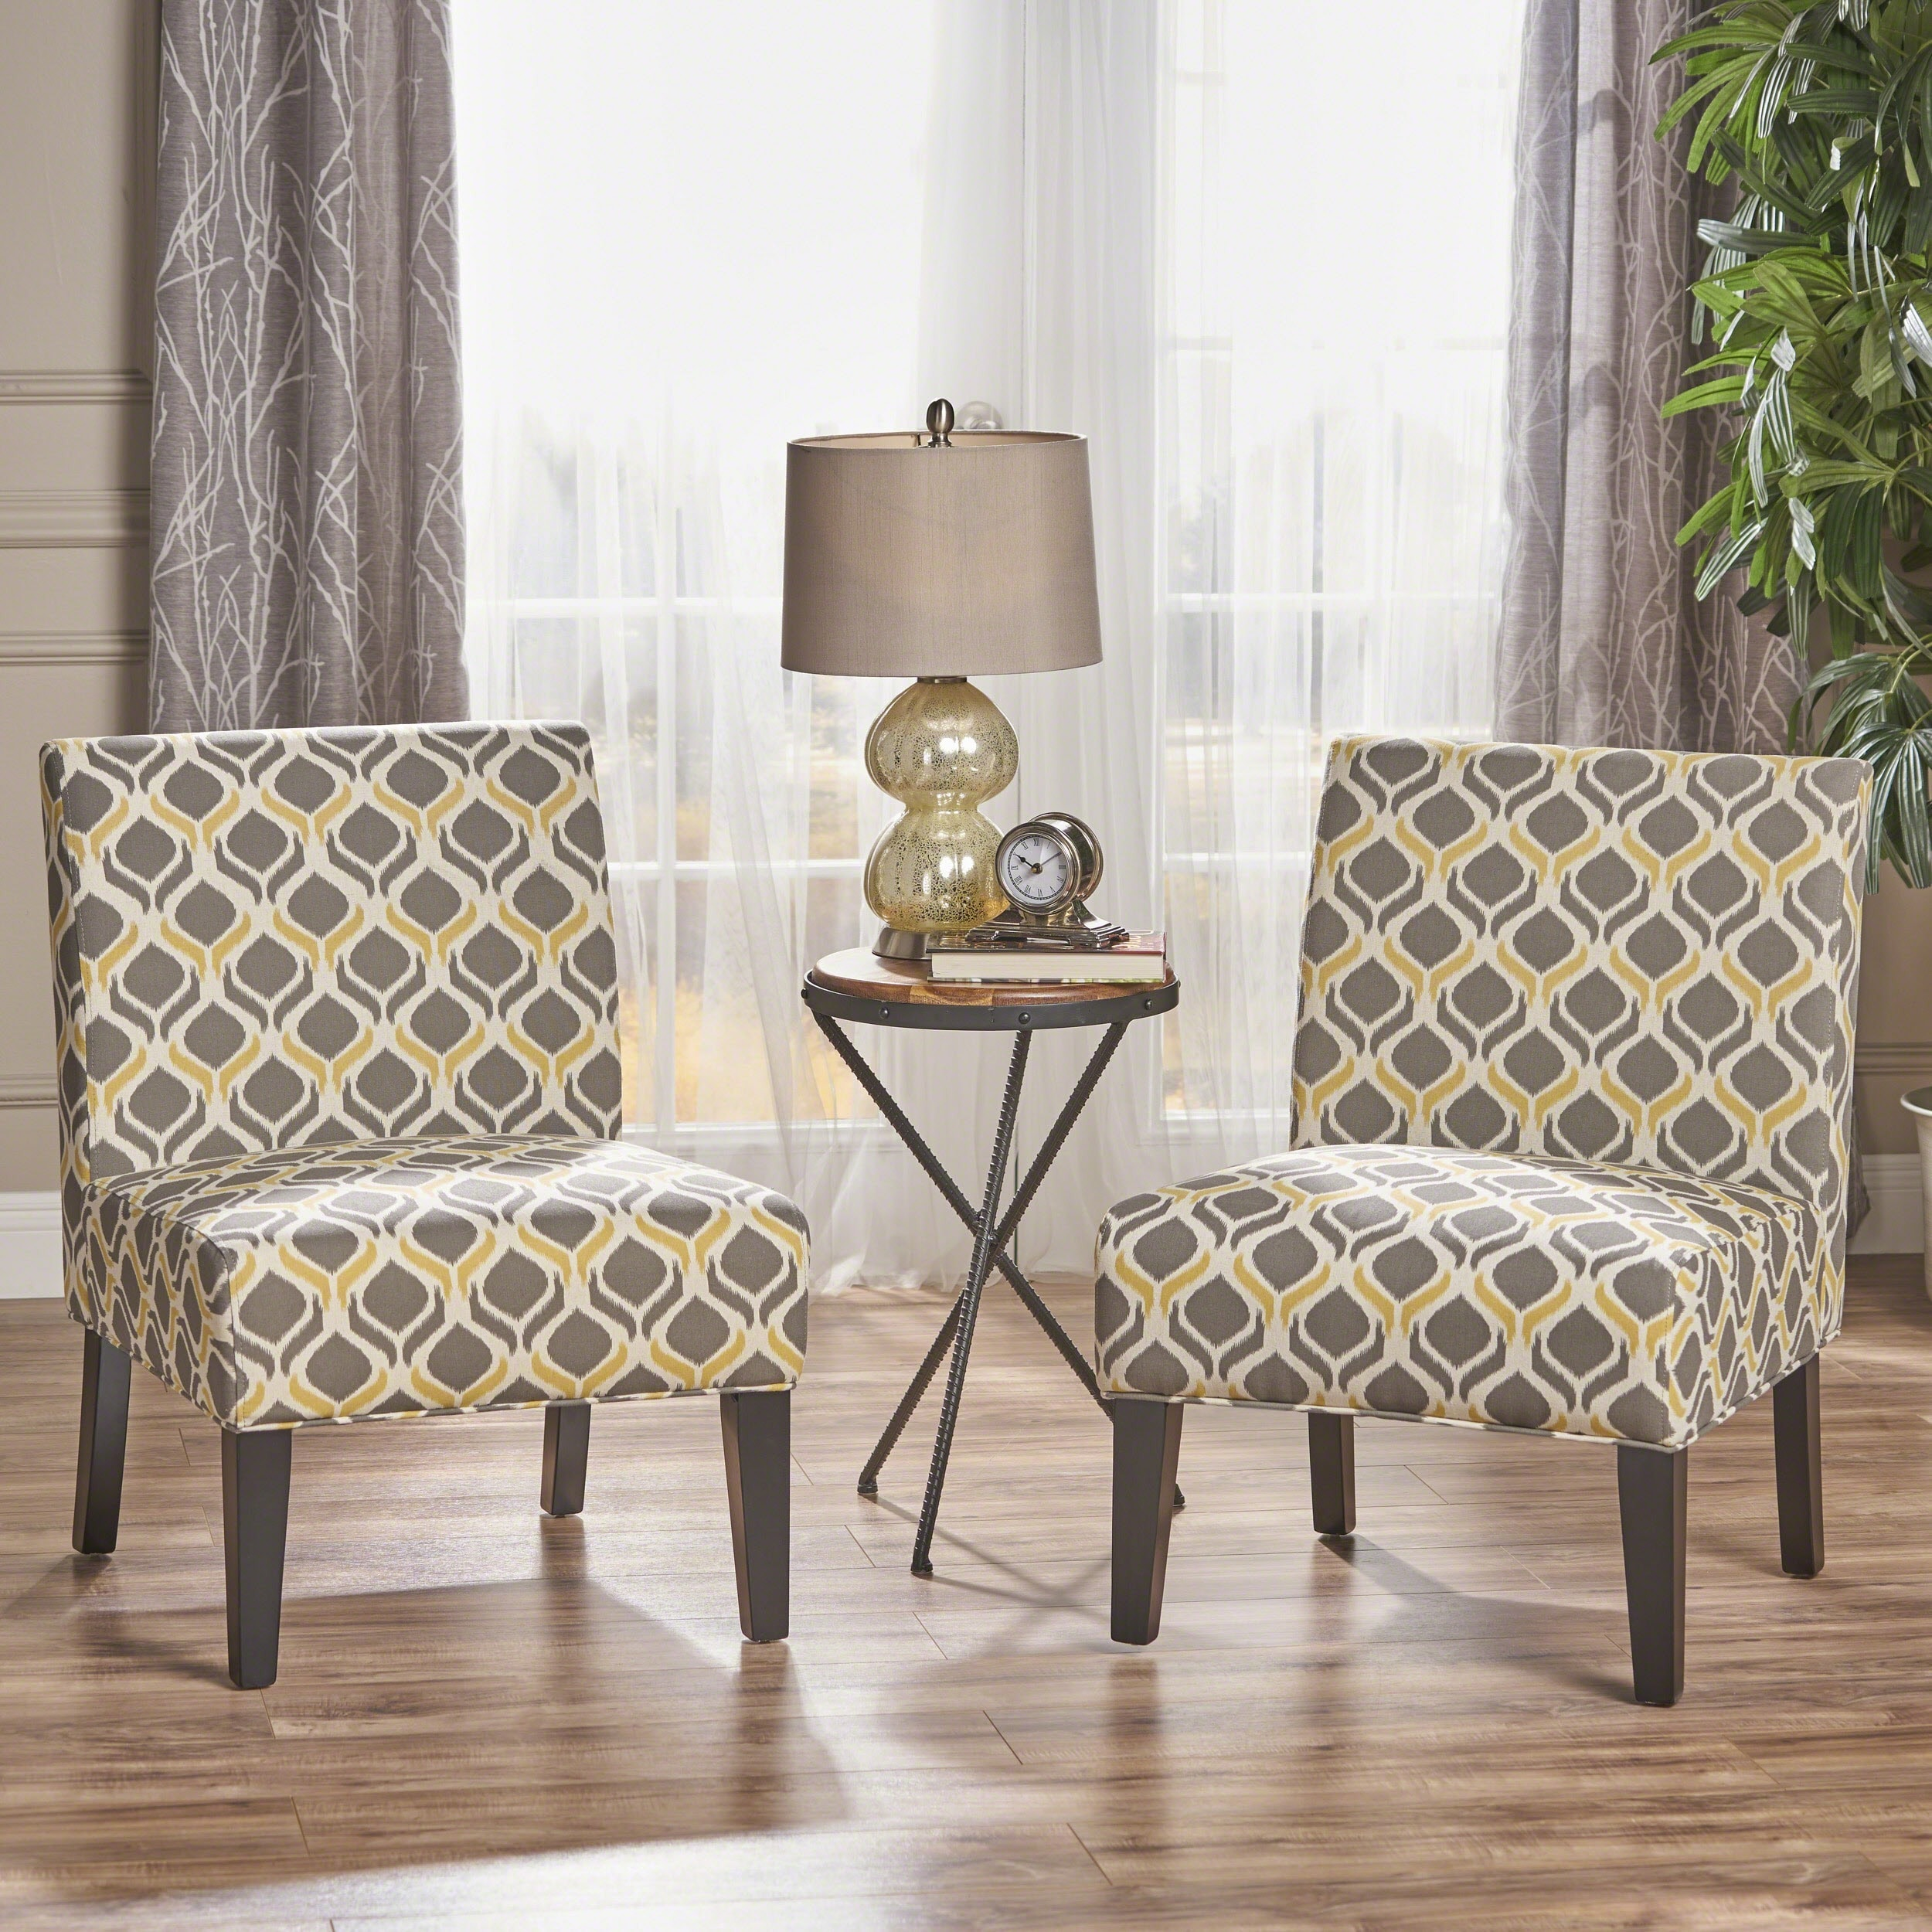 Shop saloon fabric print accent chair by christopher knight home set of 2 on sale free shipping today overstock com 11975810